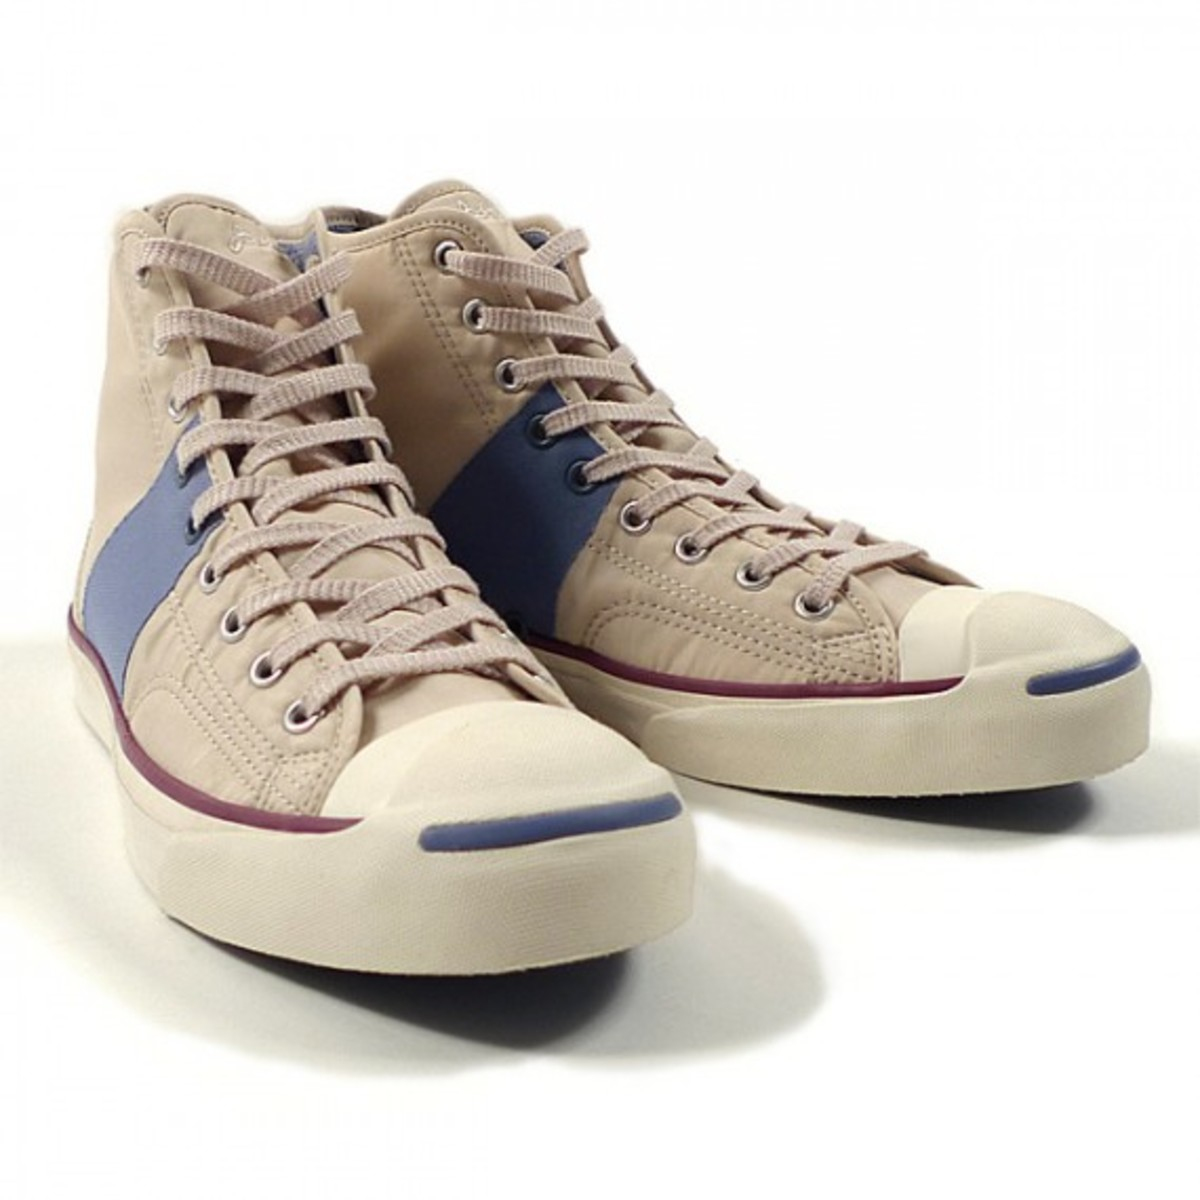 converse-first-string-jack-purcell-johnny-06